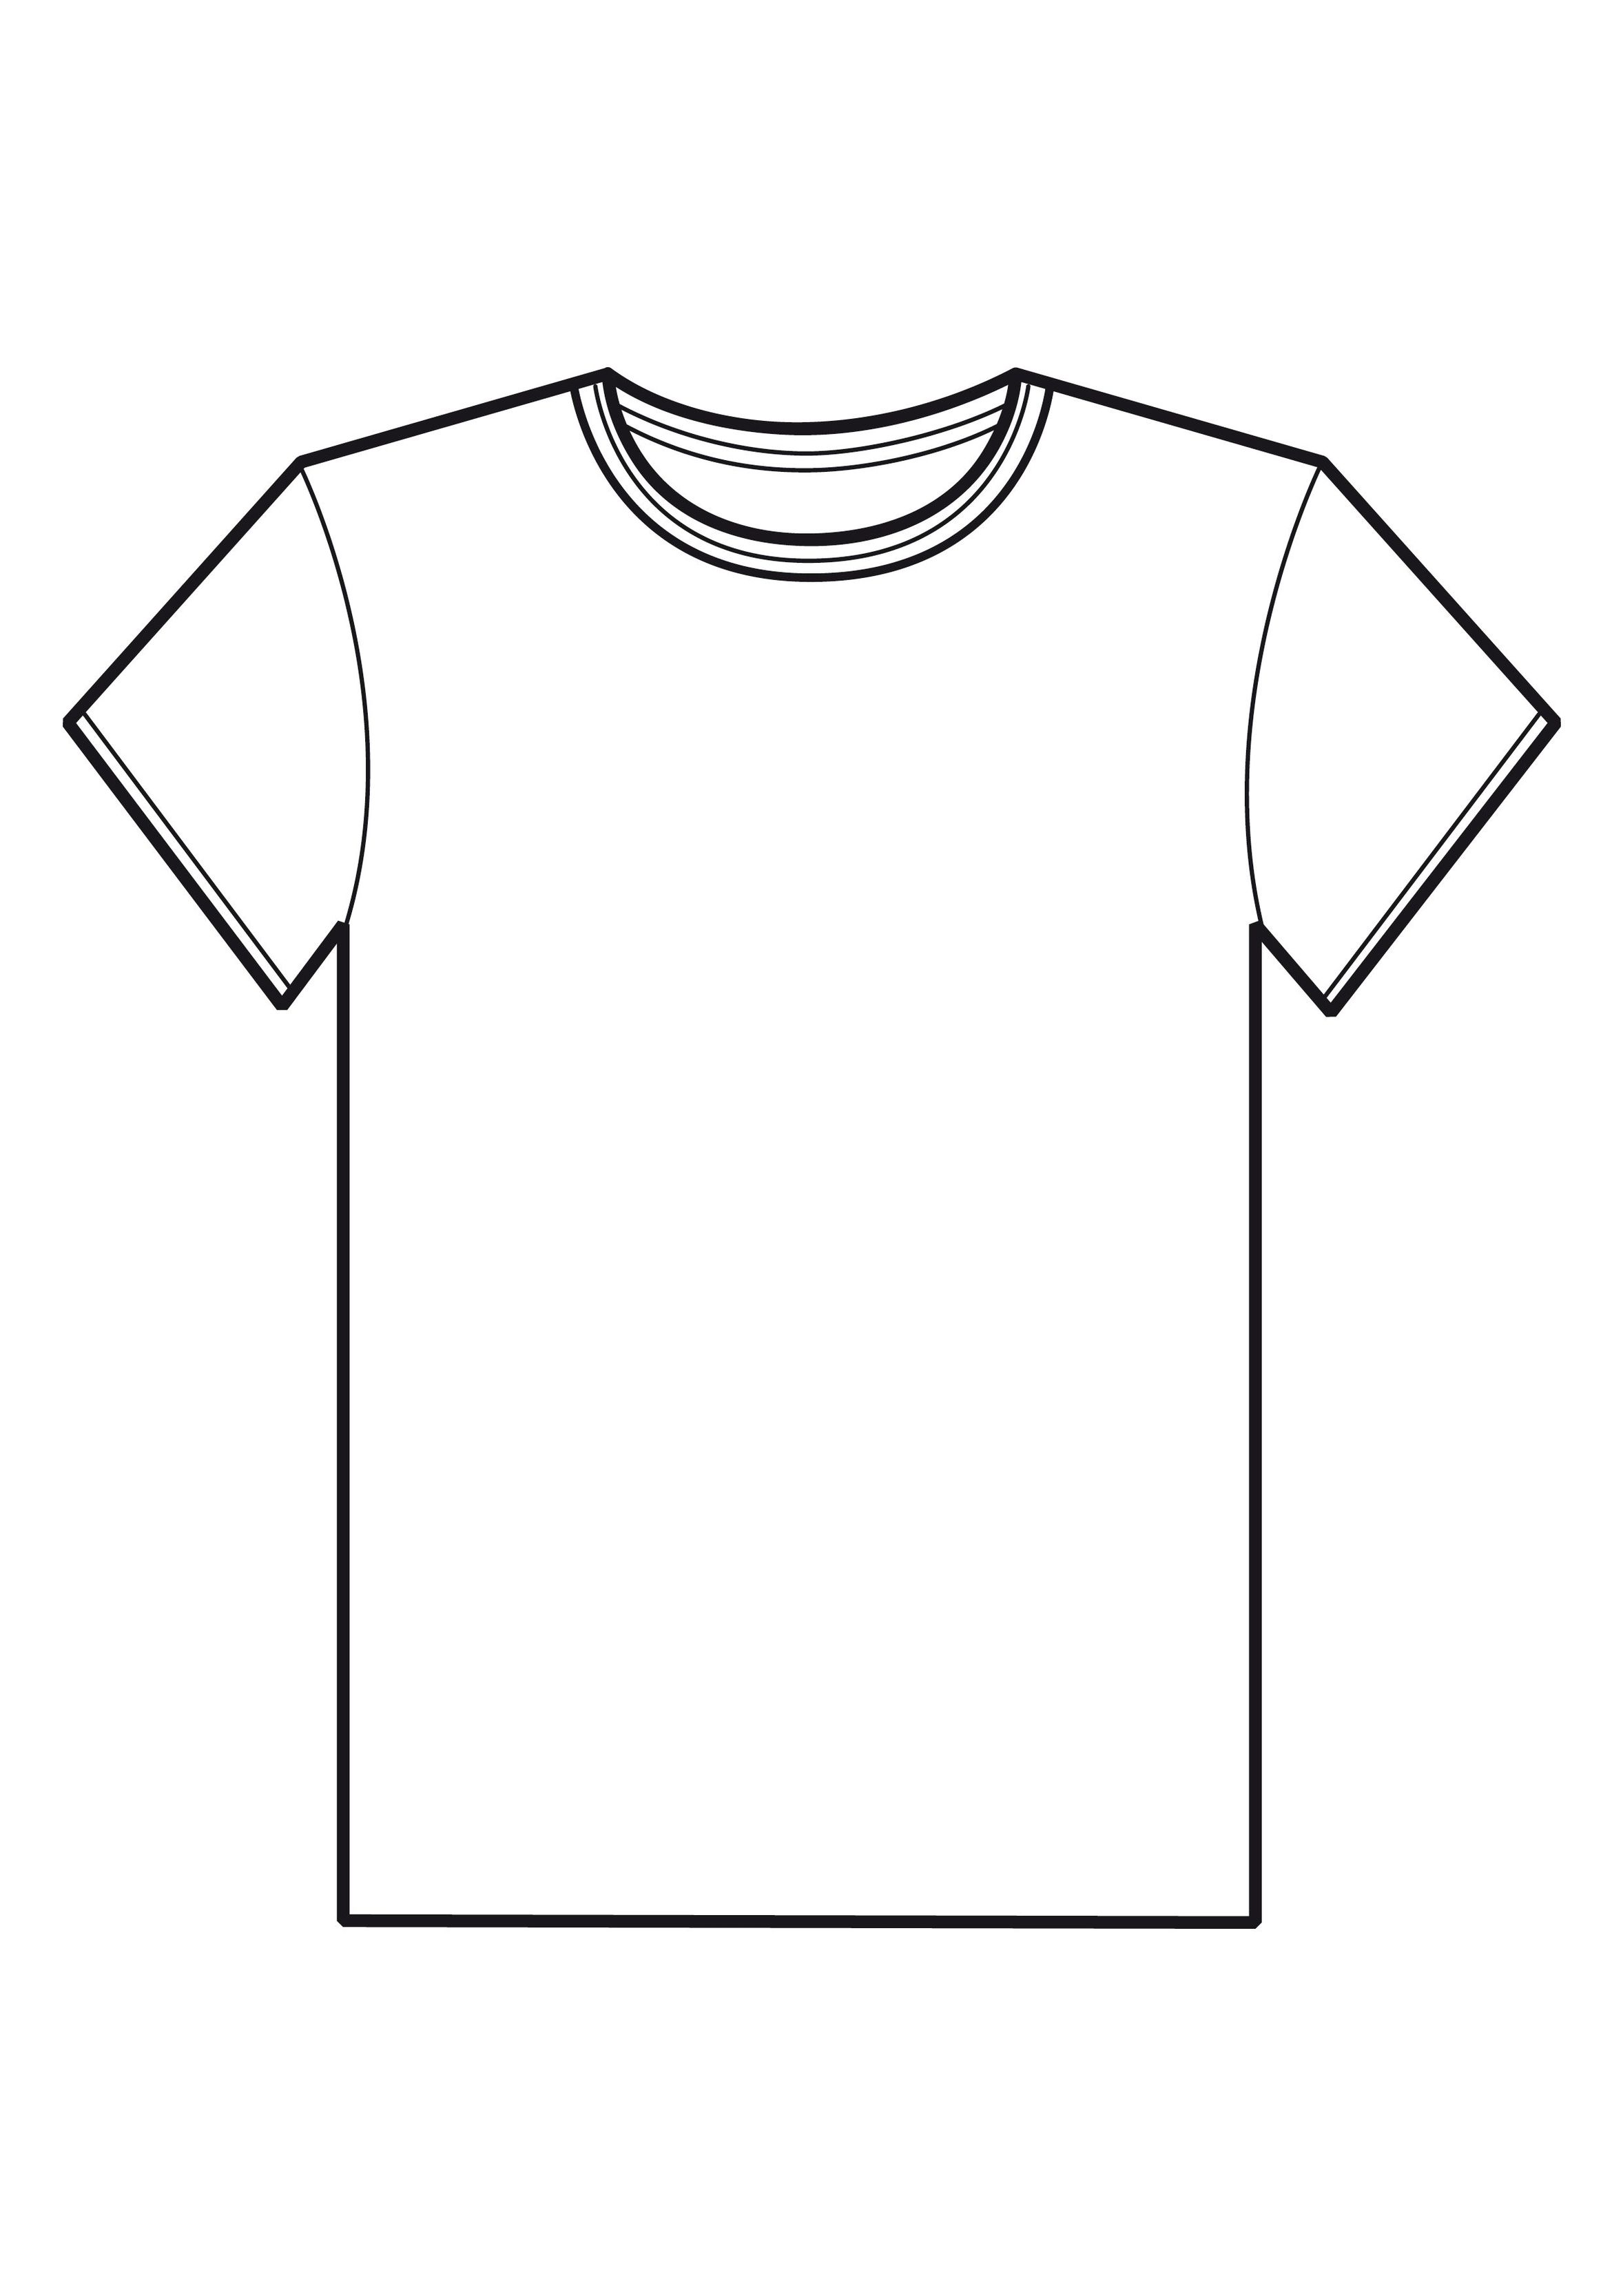 Jersey clipart tshirt. T shirt picture of